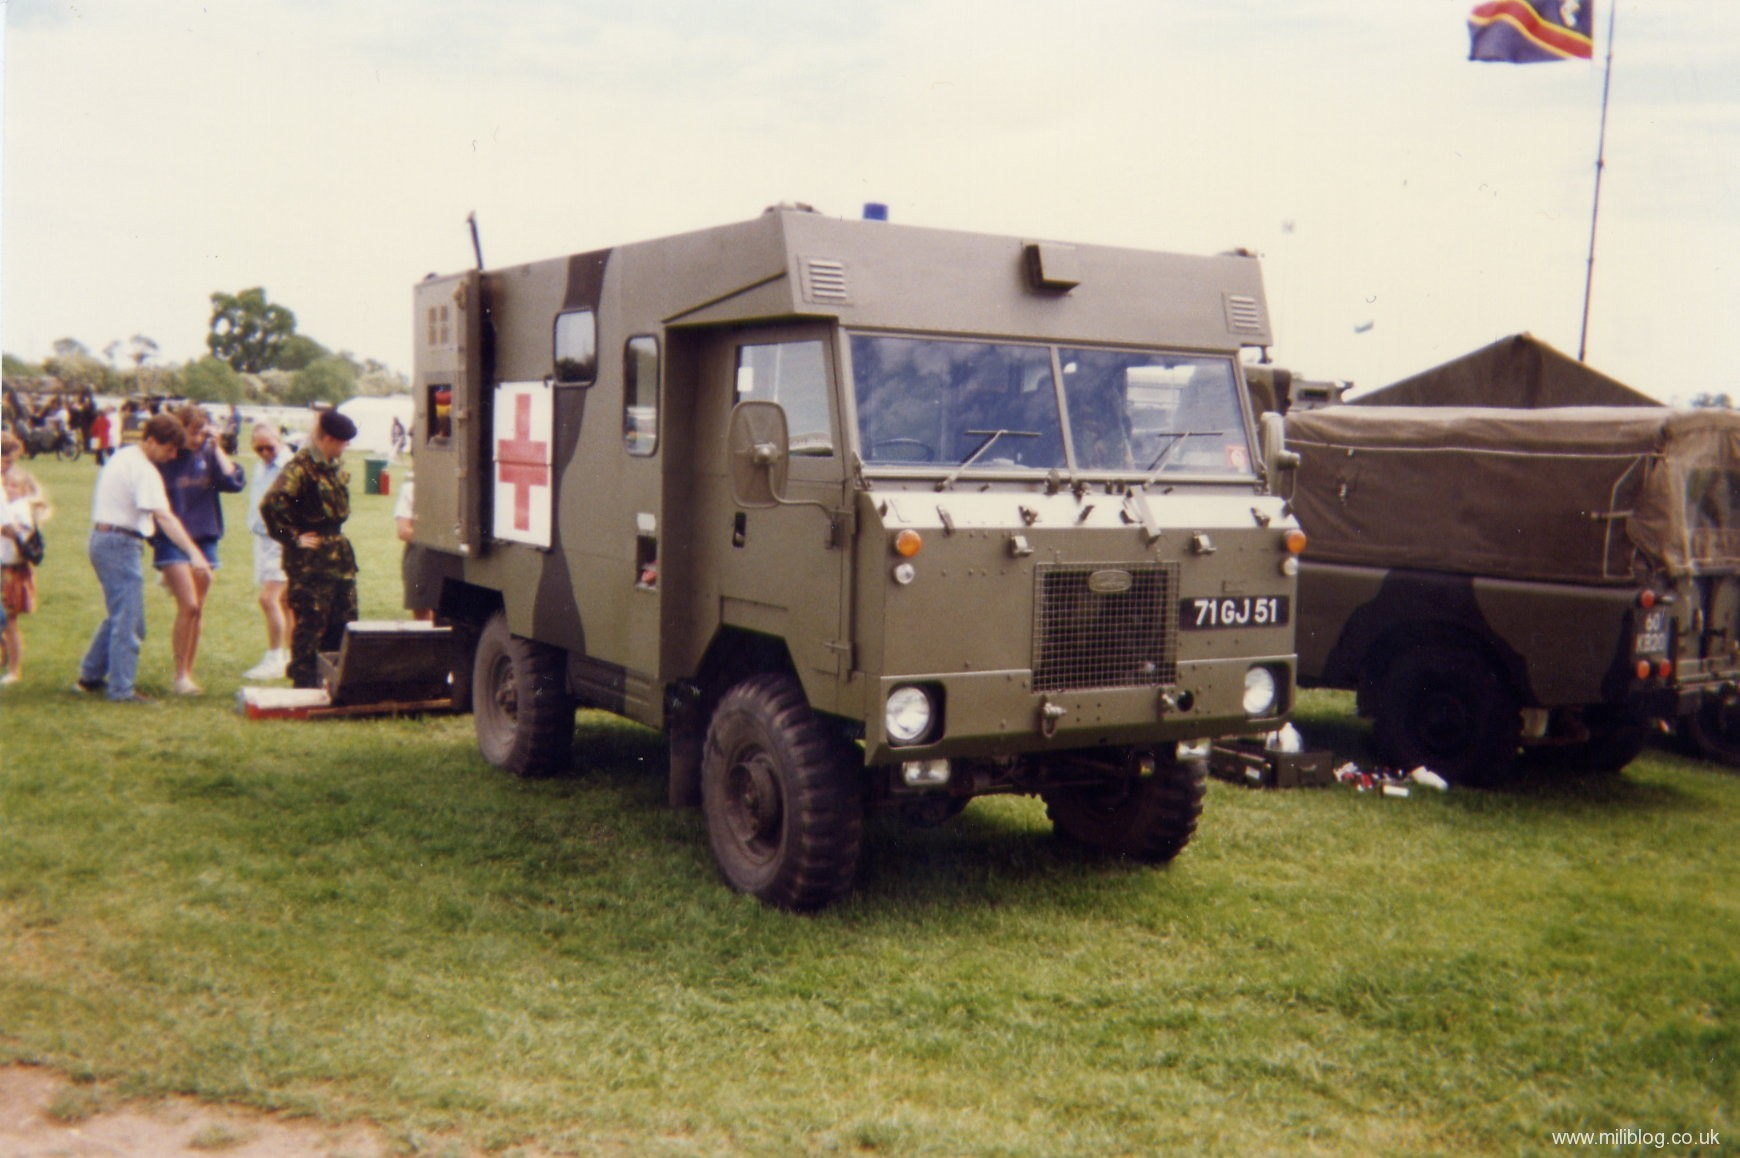 military items military vehicles military trucks military land rover 101 ambulance 71 gj 51